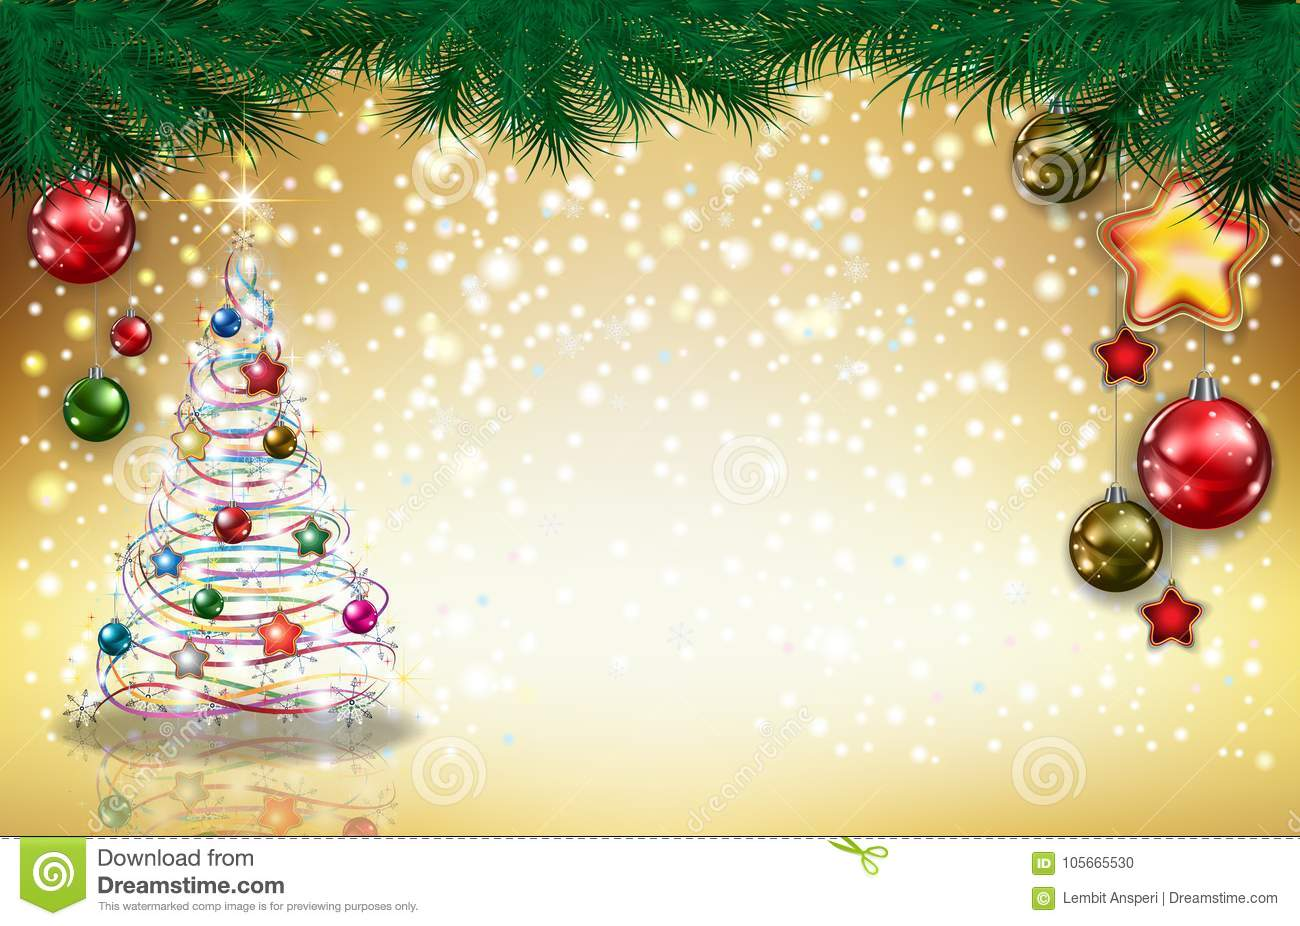 Christmas Background Stock Vector Illustration Of Artistic 105665530